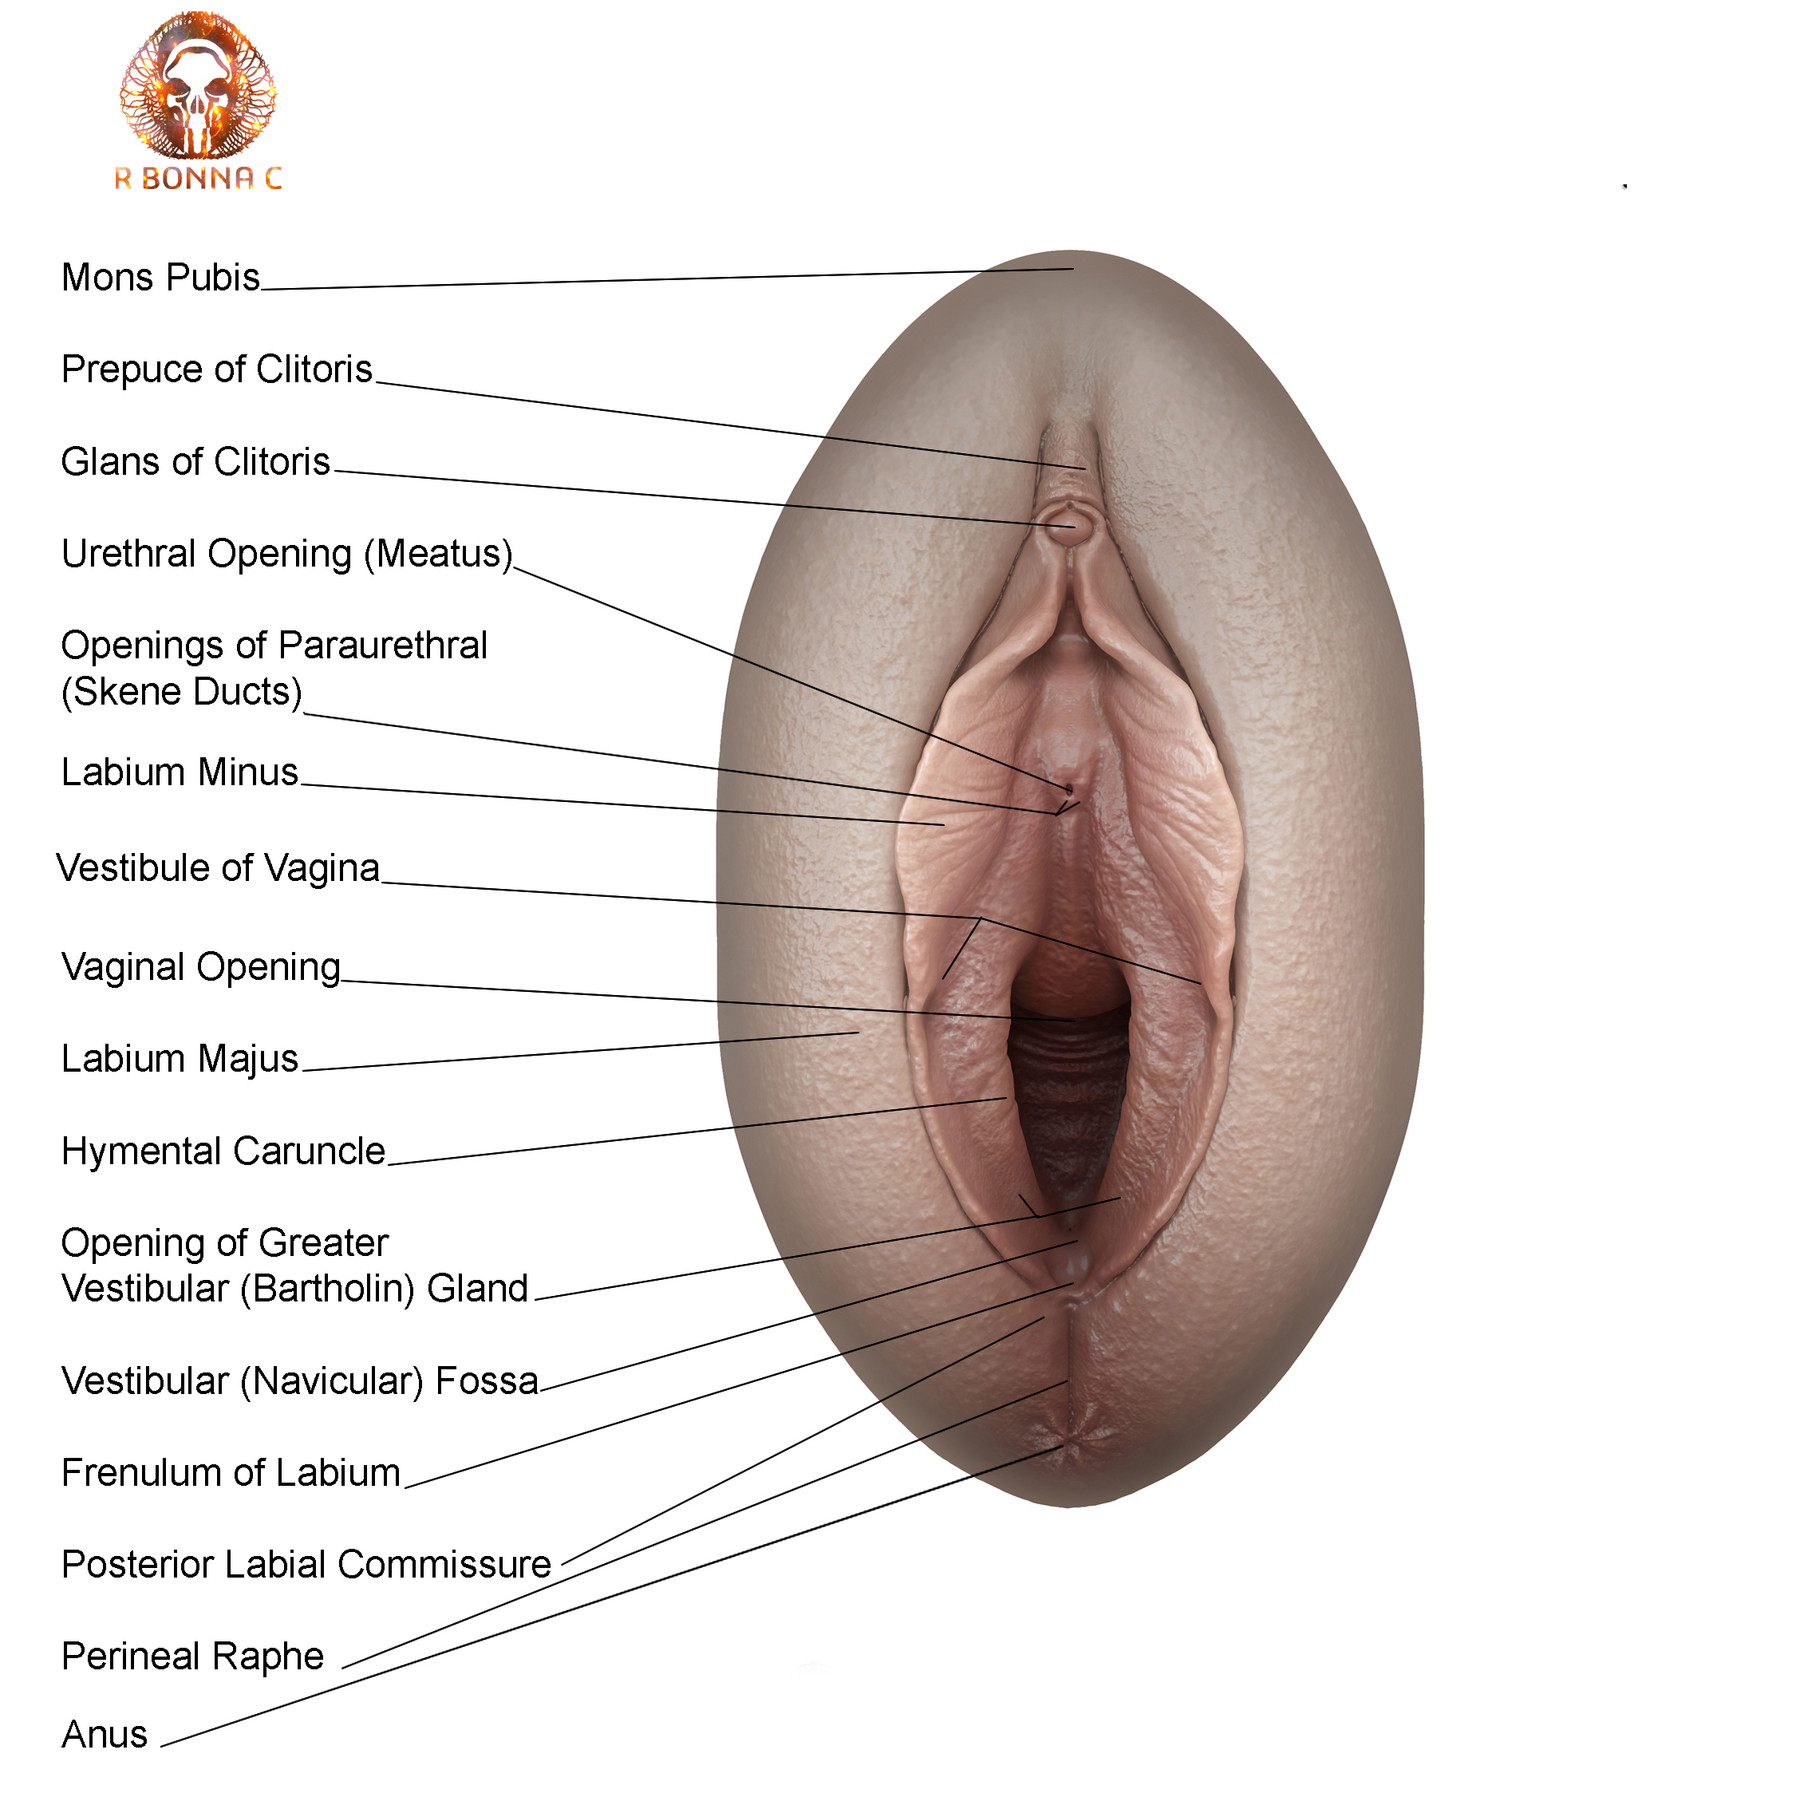 Glans Of Clitoris Anatomical Location In Female Vagina